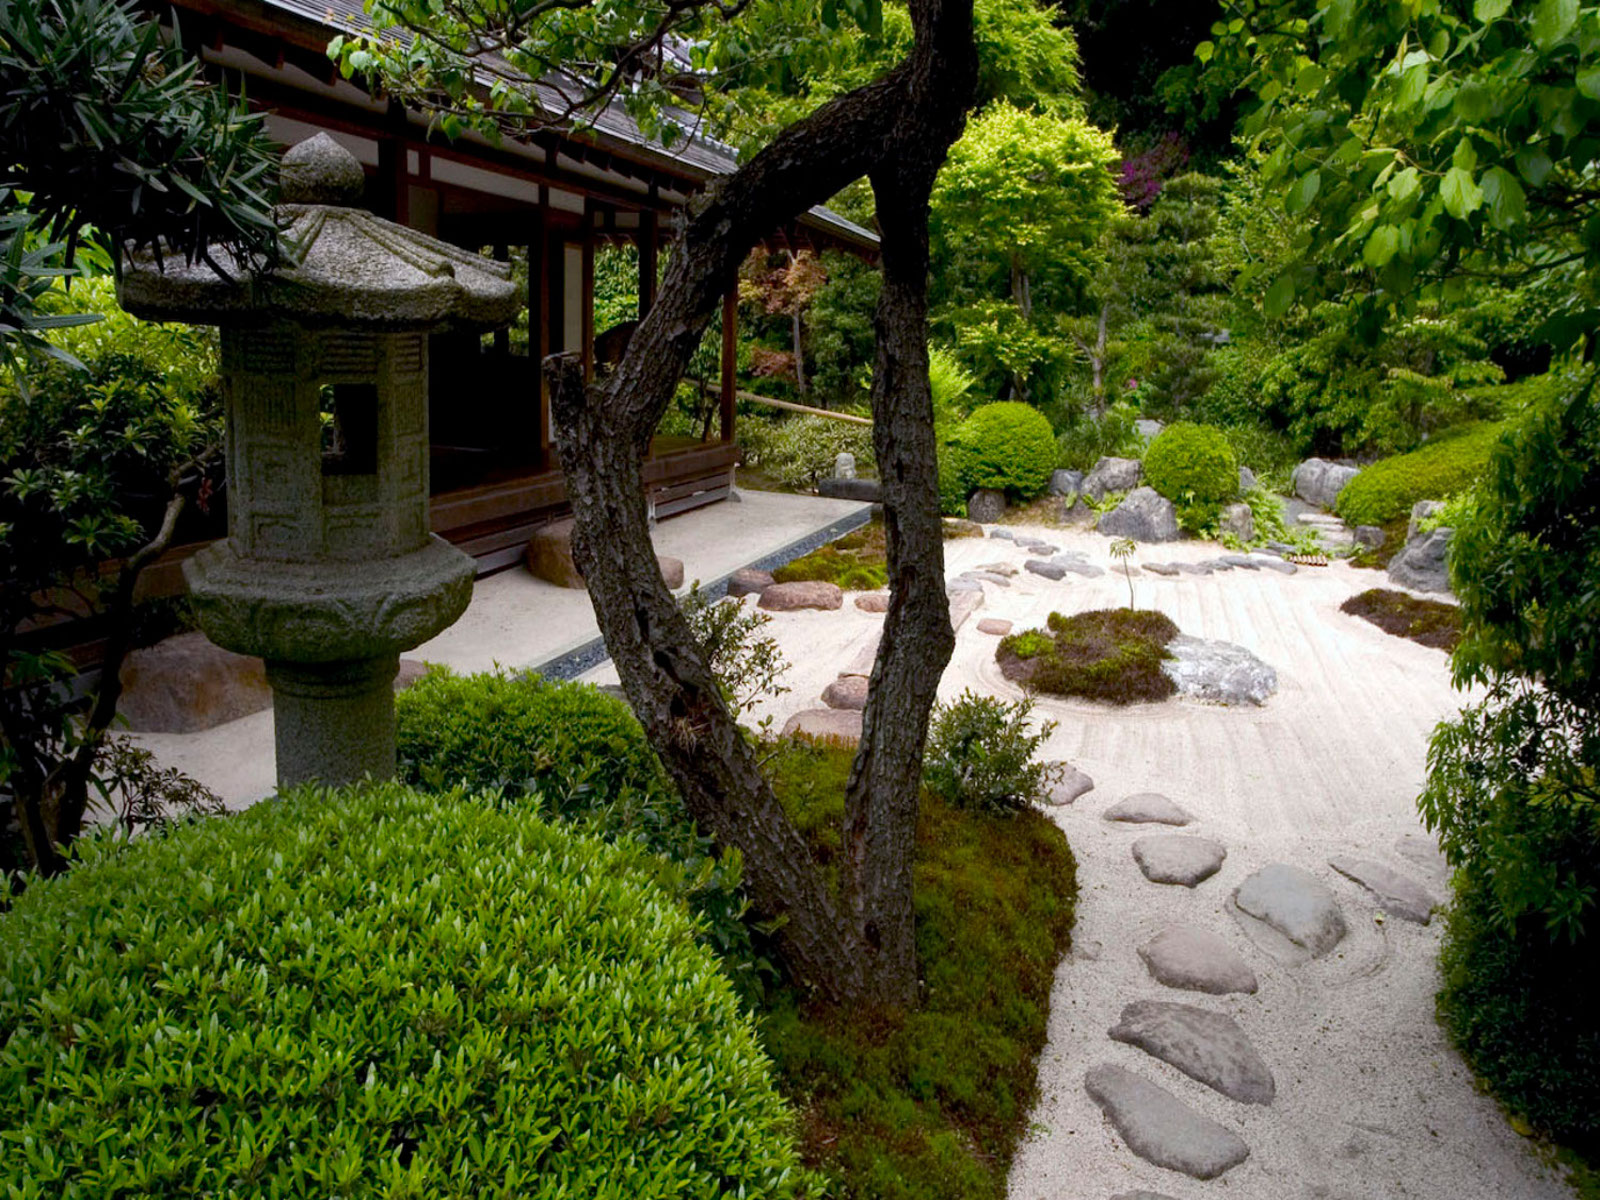 Zen garden wallpaper hd wallpaper pictures gallery for Small zen garden designs